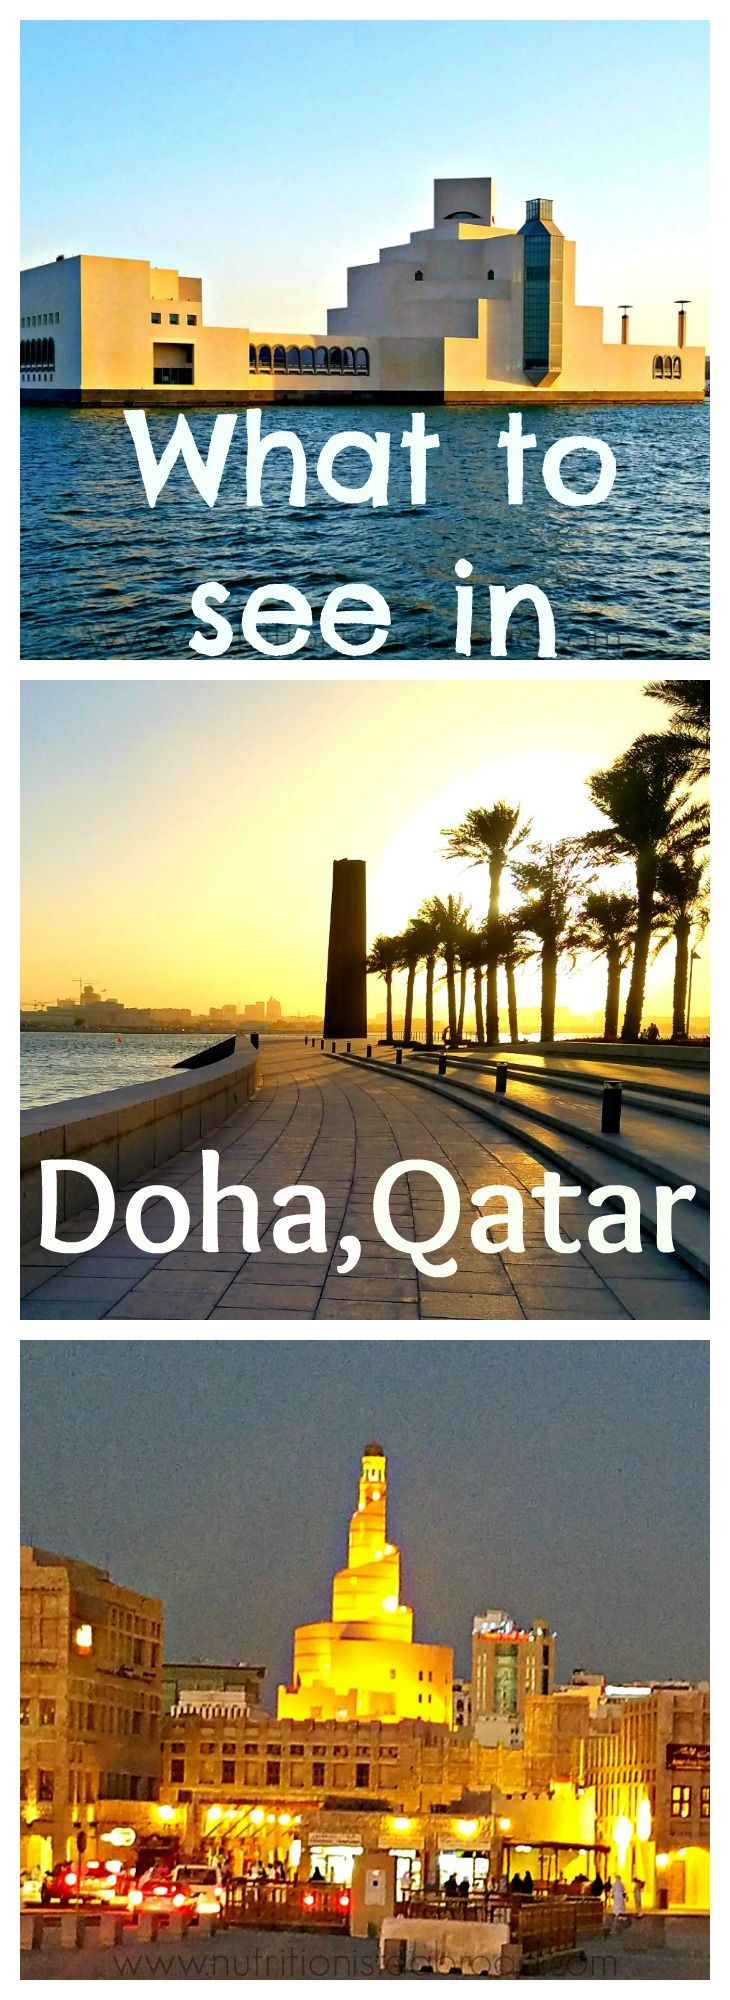 And 6 lusail katara hotel doha qatar pictures to pin on pinterest - Don T Miss These Awesome Sites In Doha Qatar